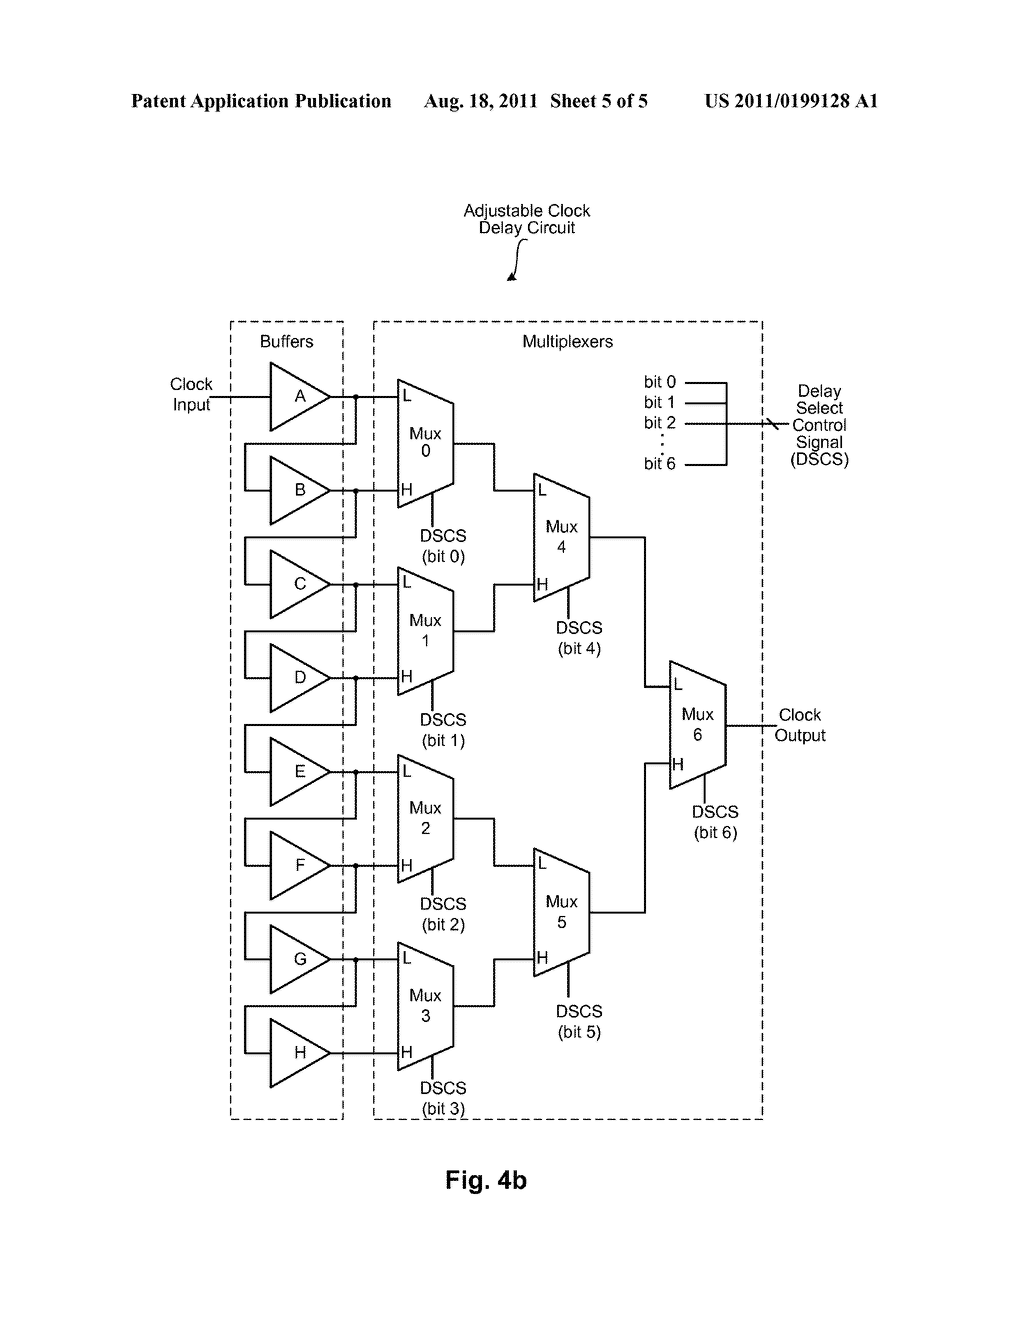 Direct Circuit Diagram 22 Wiring Images Diagrams On Line Starter Schematic And 20110199128 06 Rom Based Digital Synthesizer With Pipeline Delay Online At